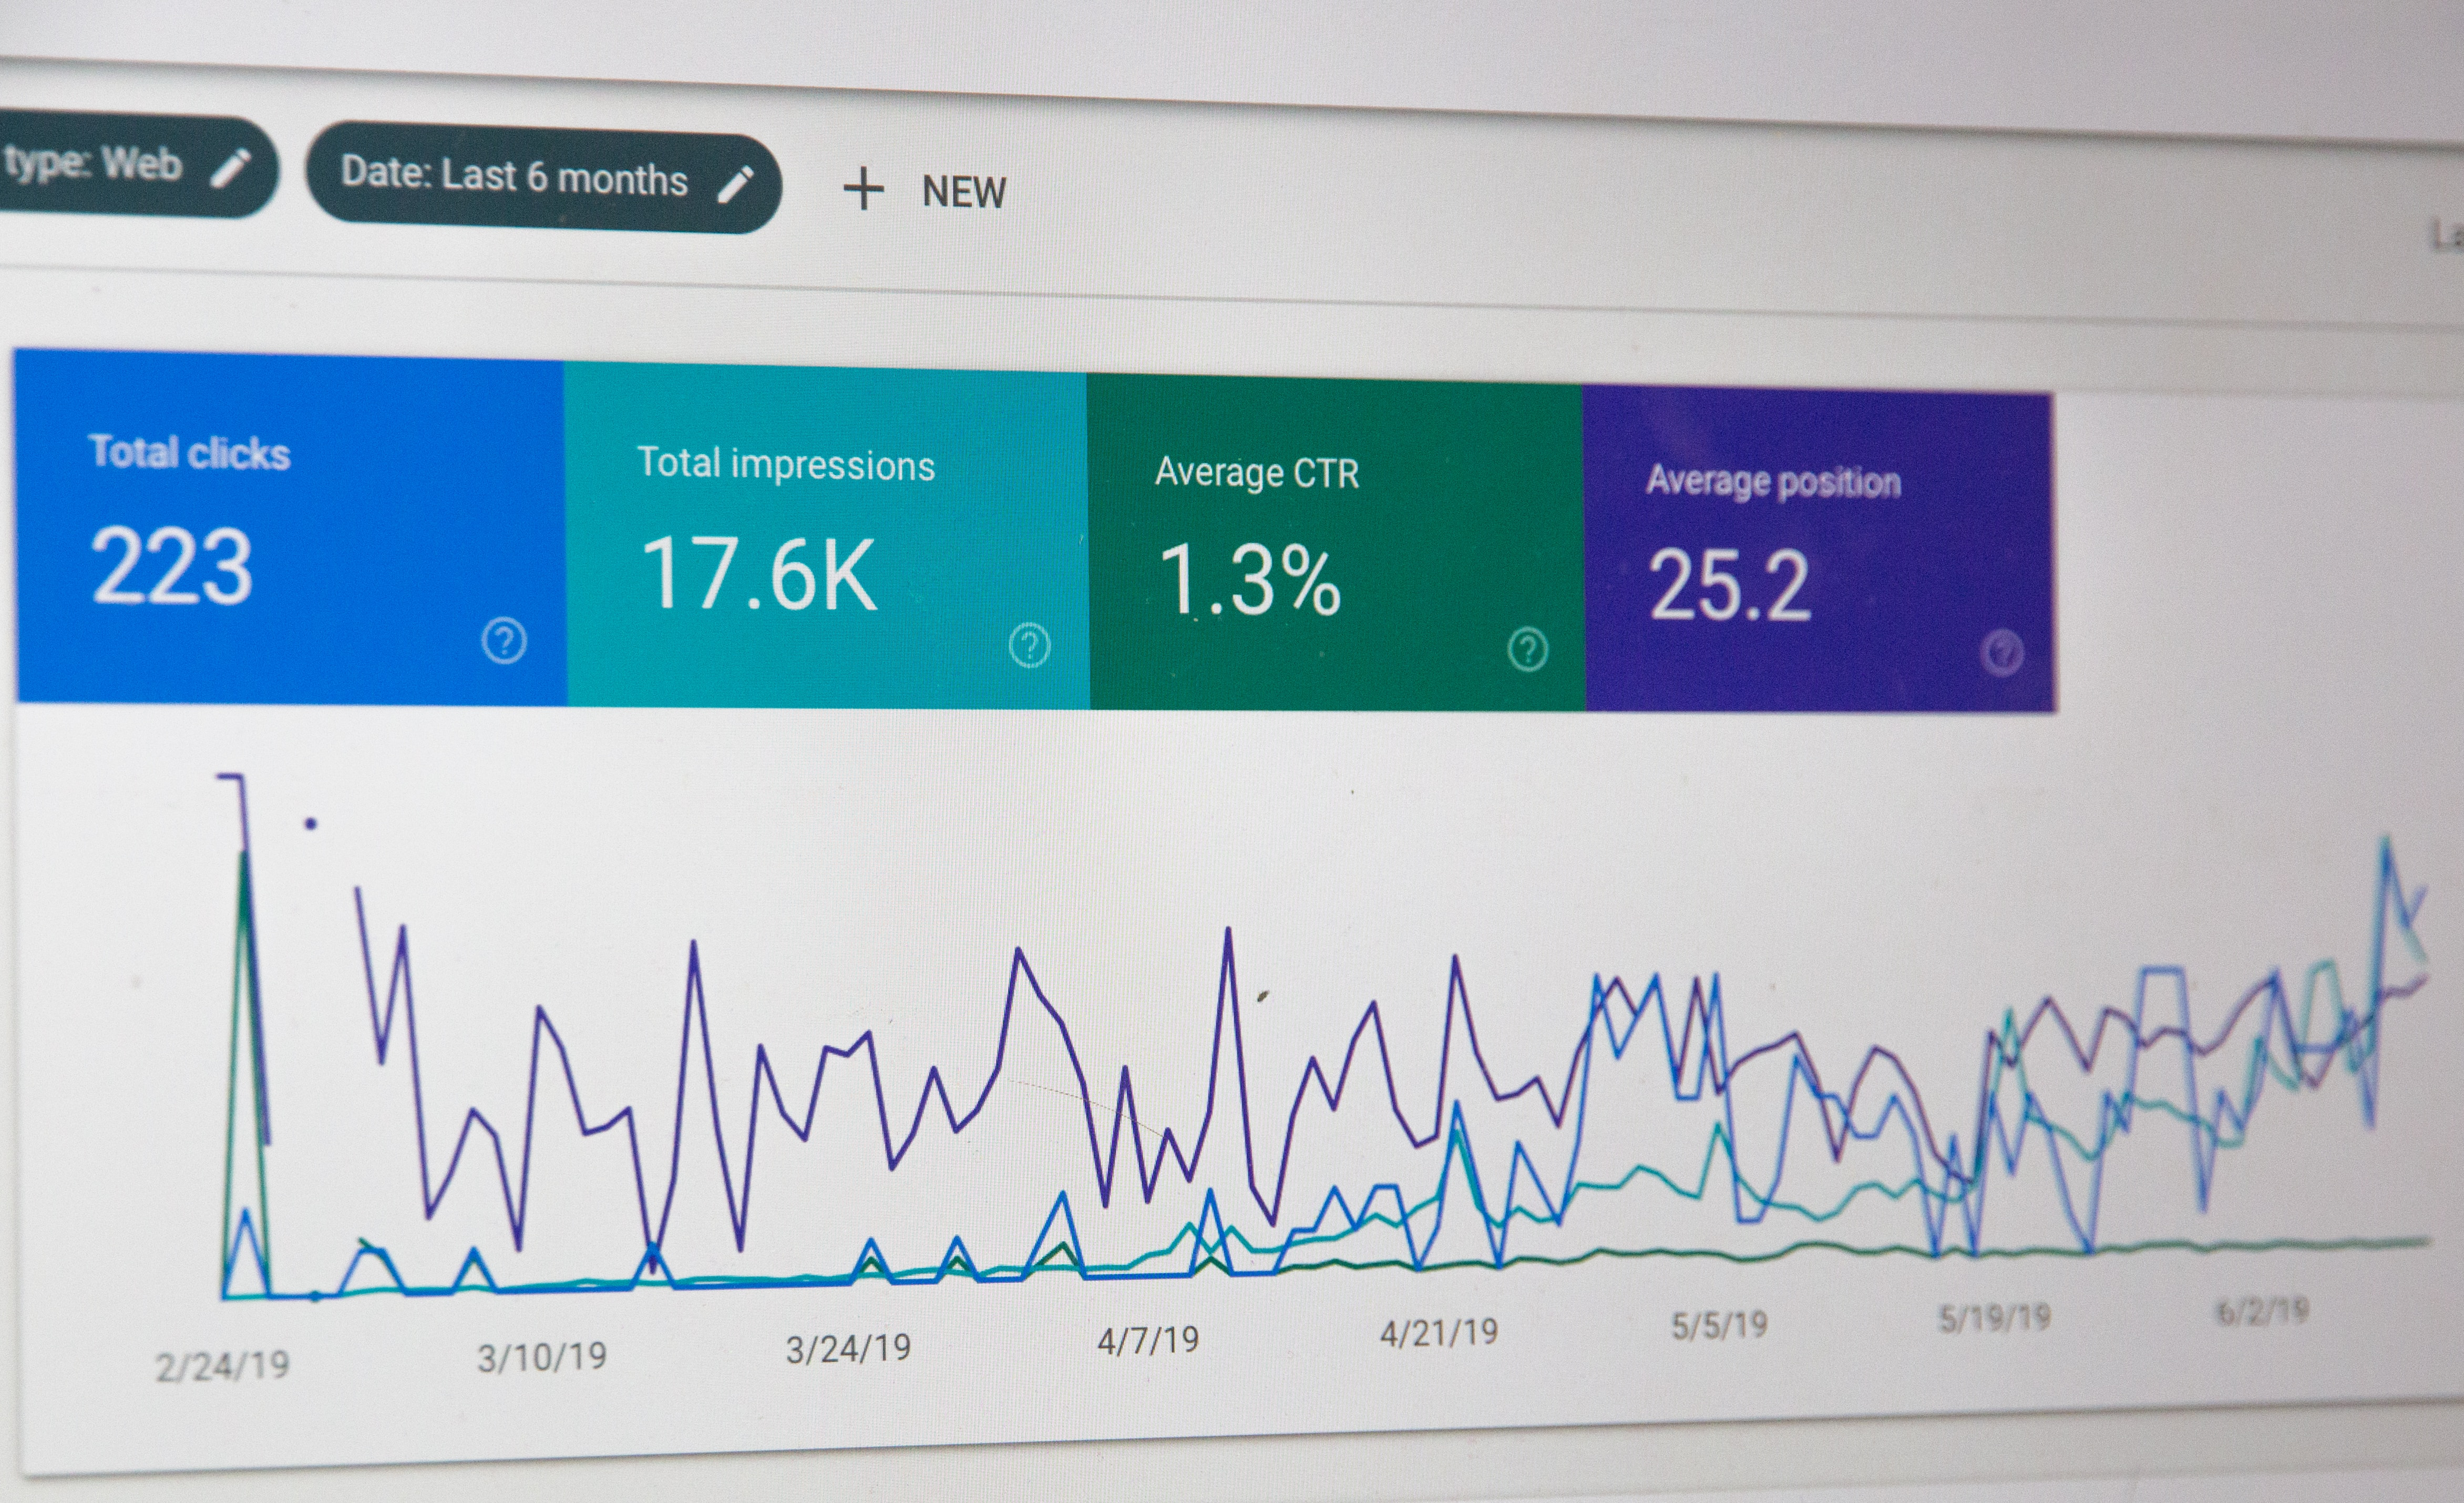 Tips for increasing your organic reach on search